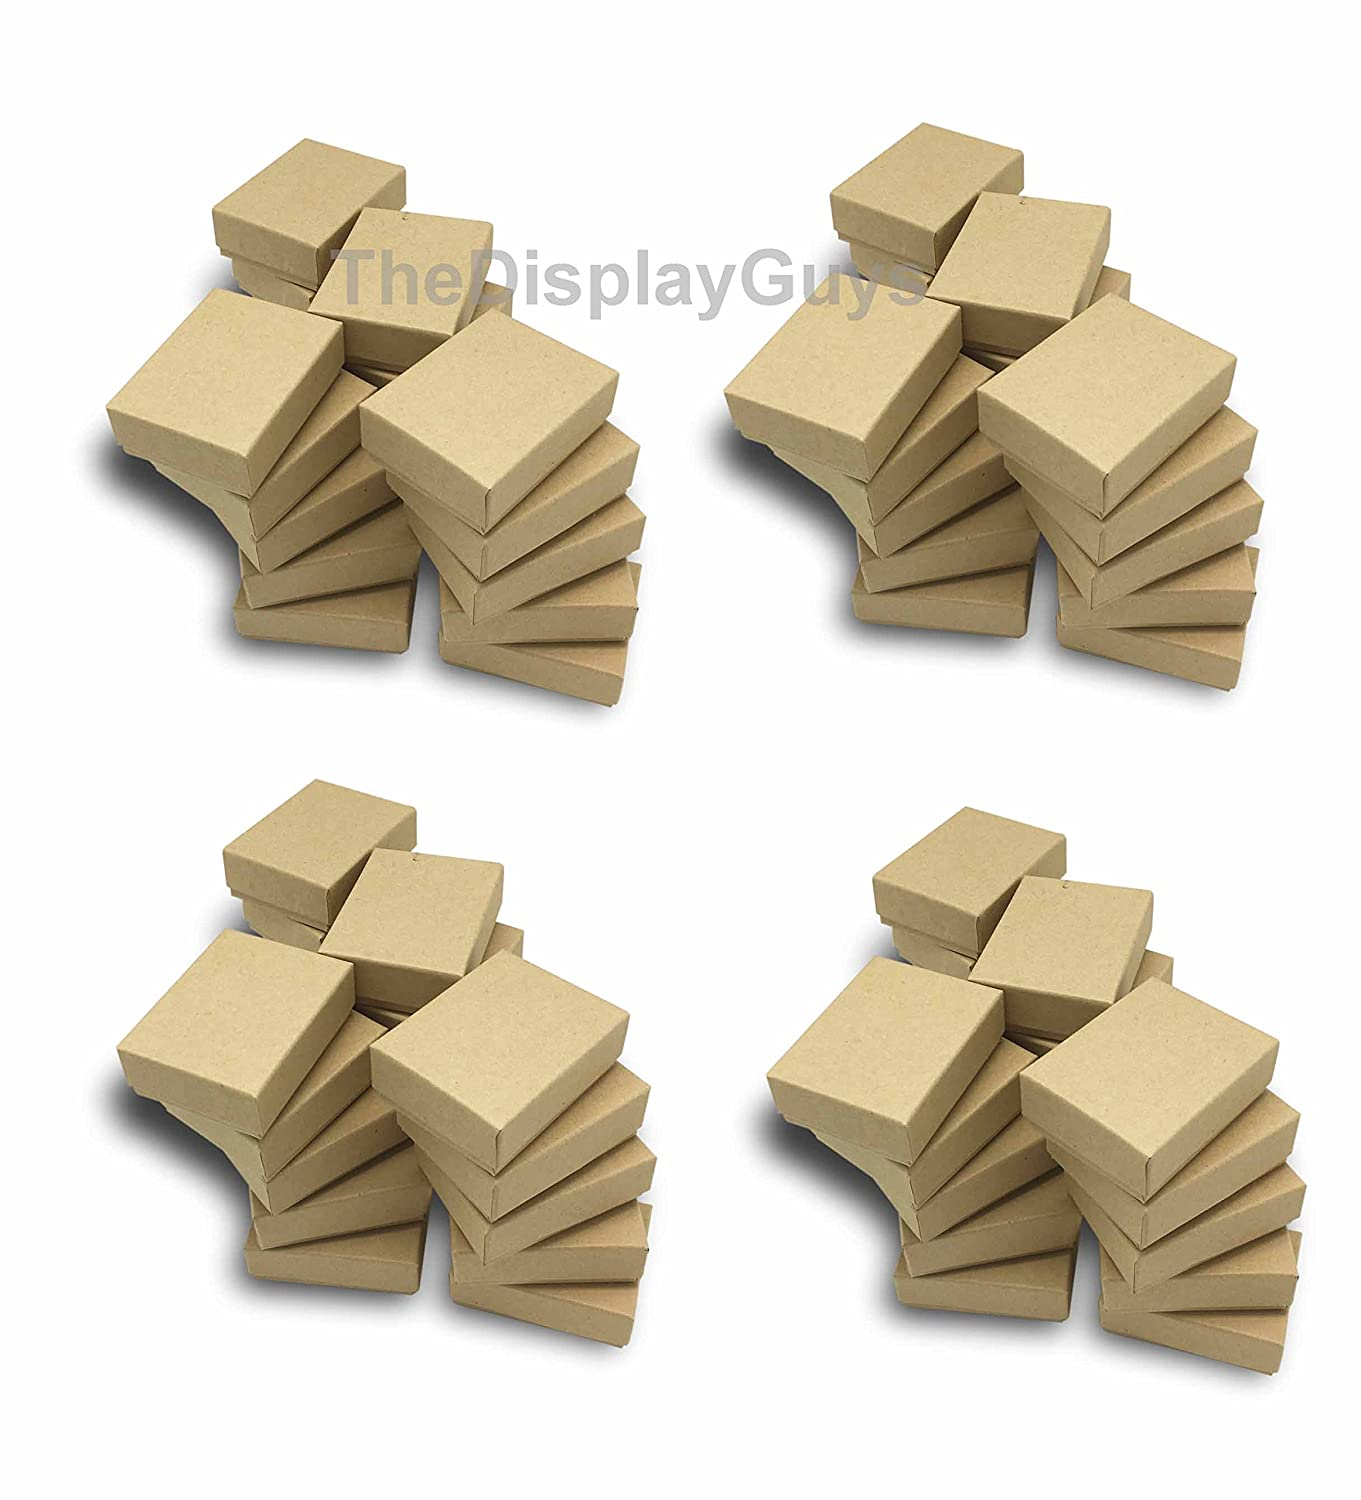 2 1//8x1 5//8x3//4 inches #11 The Display Guys~ Pack of 100 Cotton Filled Cardboard Paper Kraft Jewelry Box Gift Case Kraft Brown